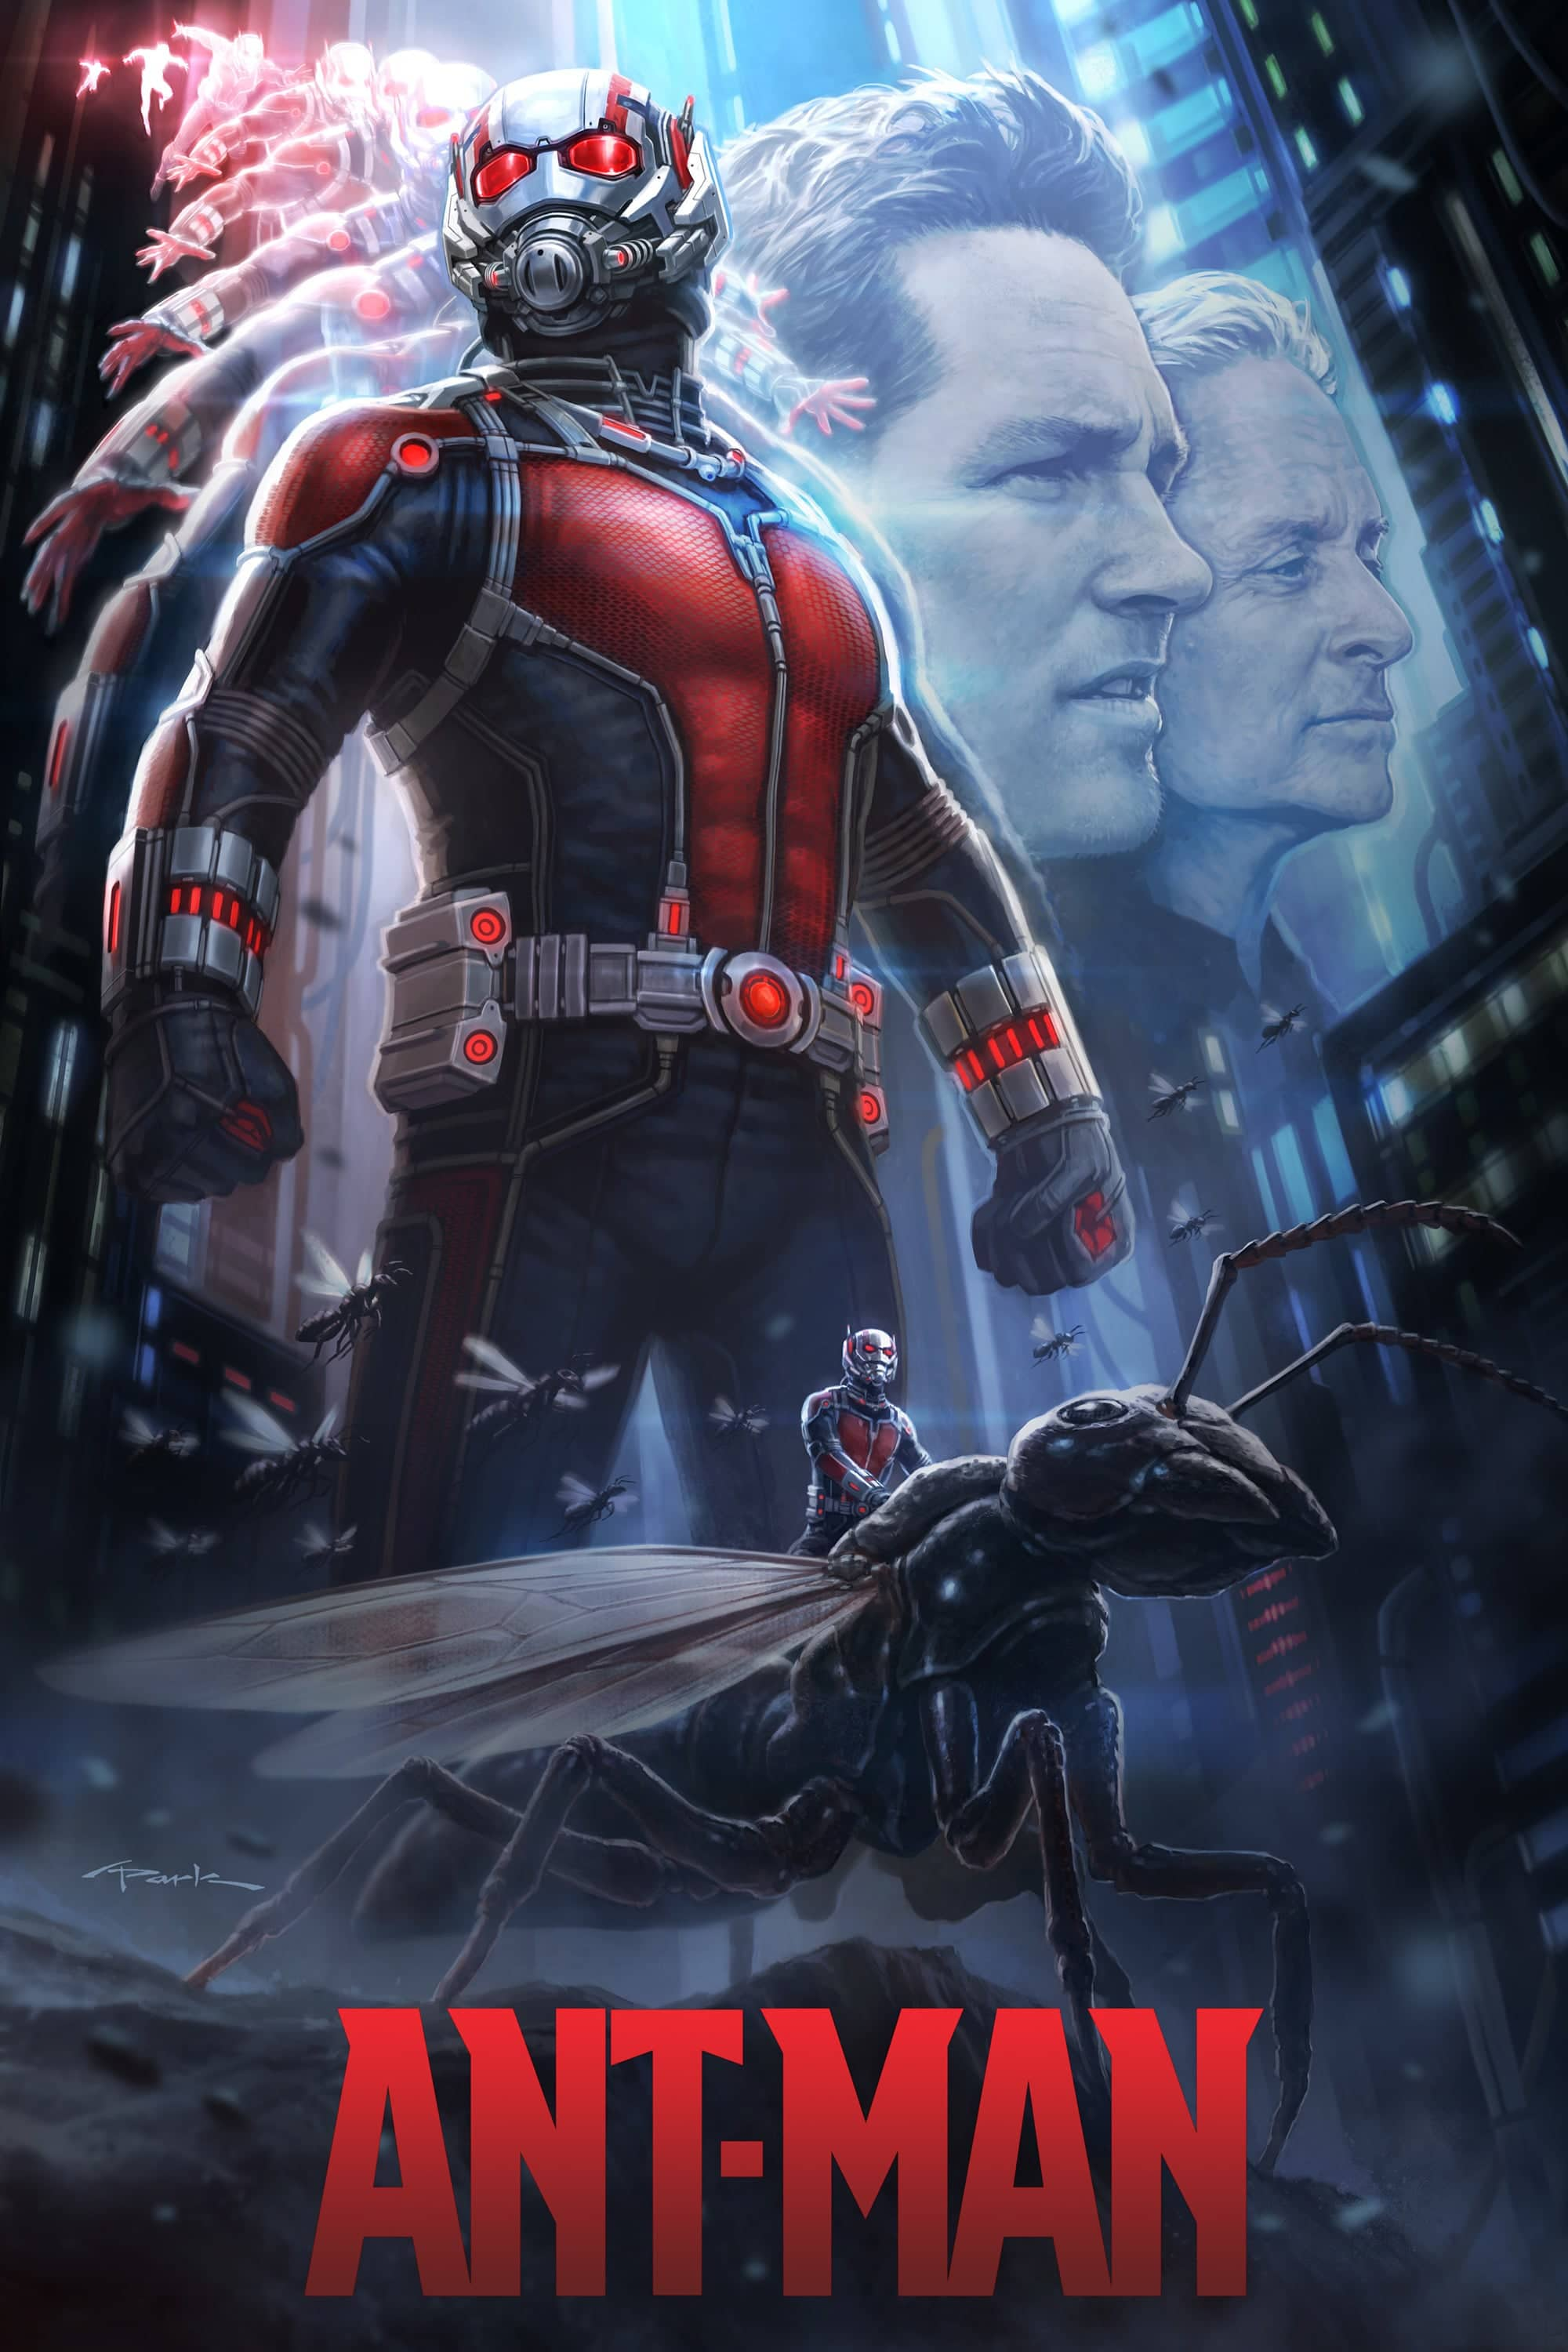 ant man poster high quality HD printable wallpapers 2015 ant man with the ants